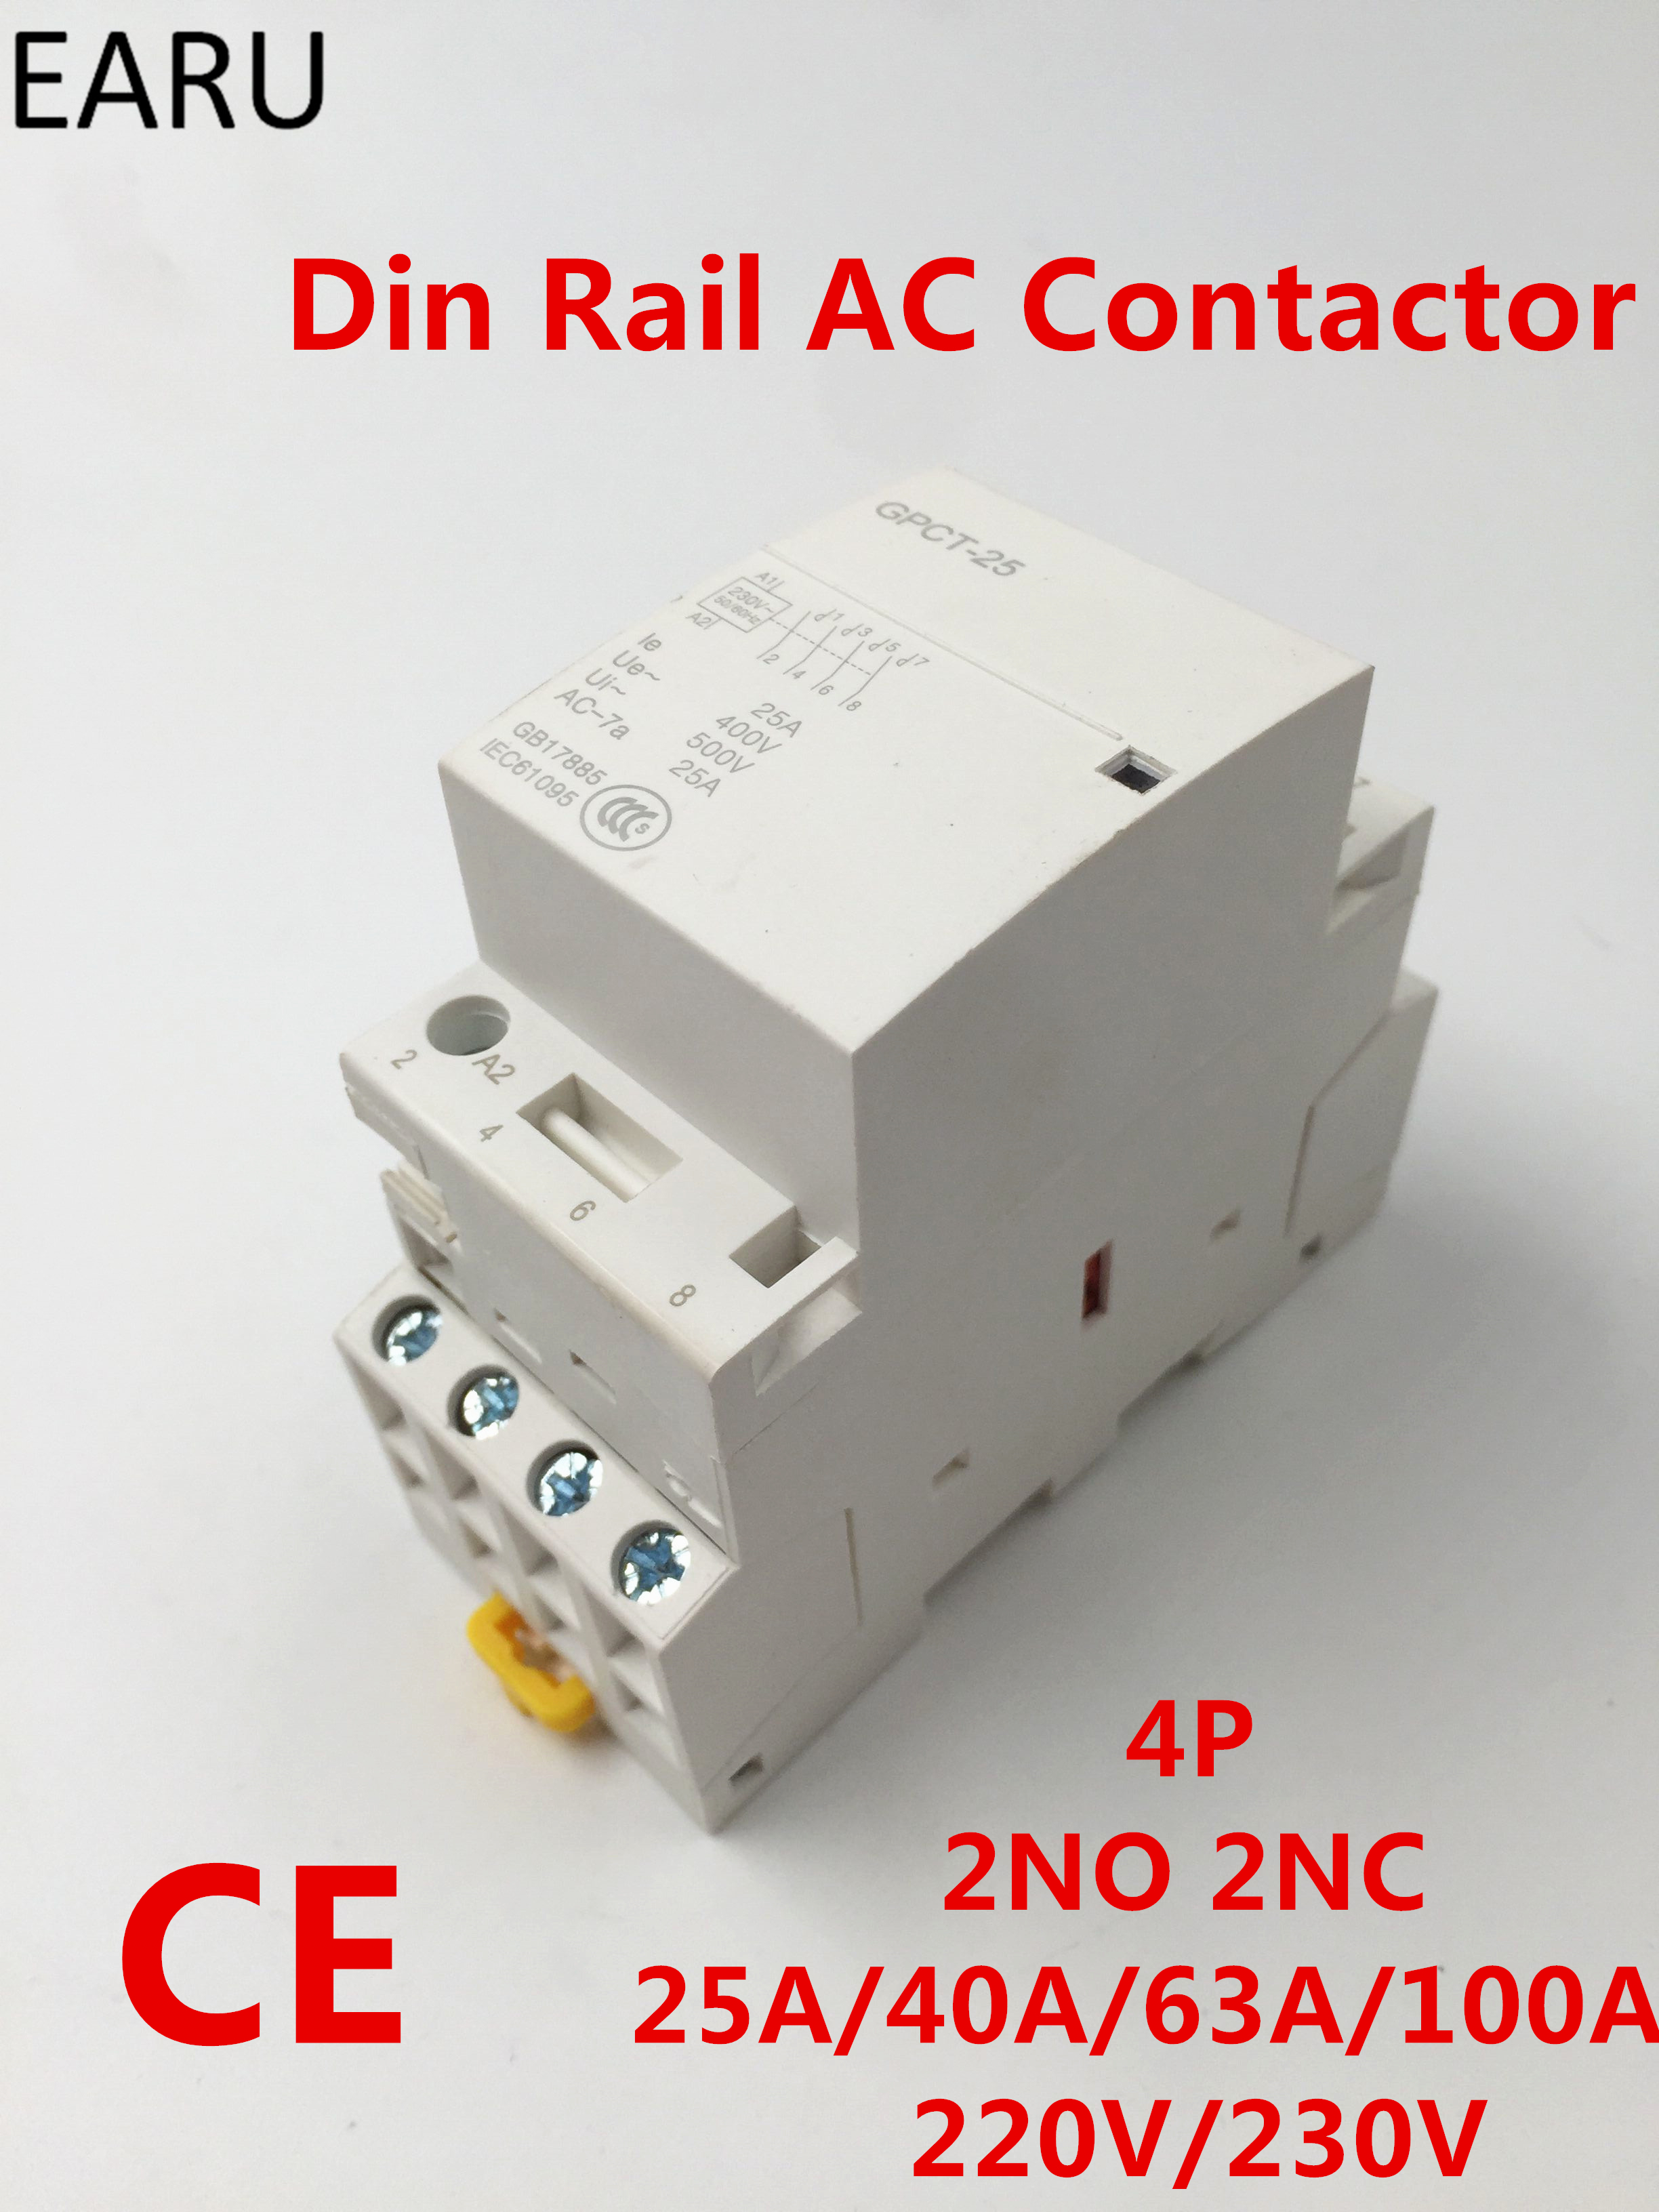 GPCT1 4P 25A 40A 63A 100A 2NC 2NO 220V/230V 50/60HZ Din Rail Household Module Modular Ac Contactor For Home Hotel Resturant free shipping gpct1 2p 16a 25a 220v 230v 50 60hz din rail household ac contactor 2no for household home hotel resturant